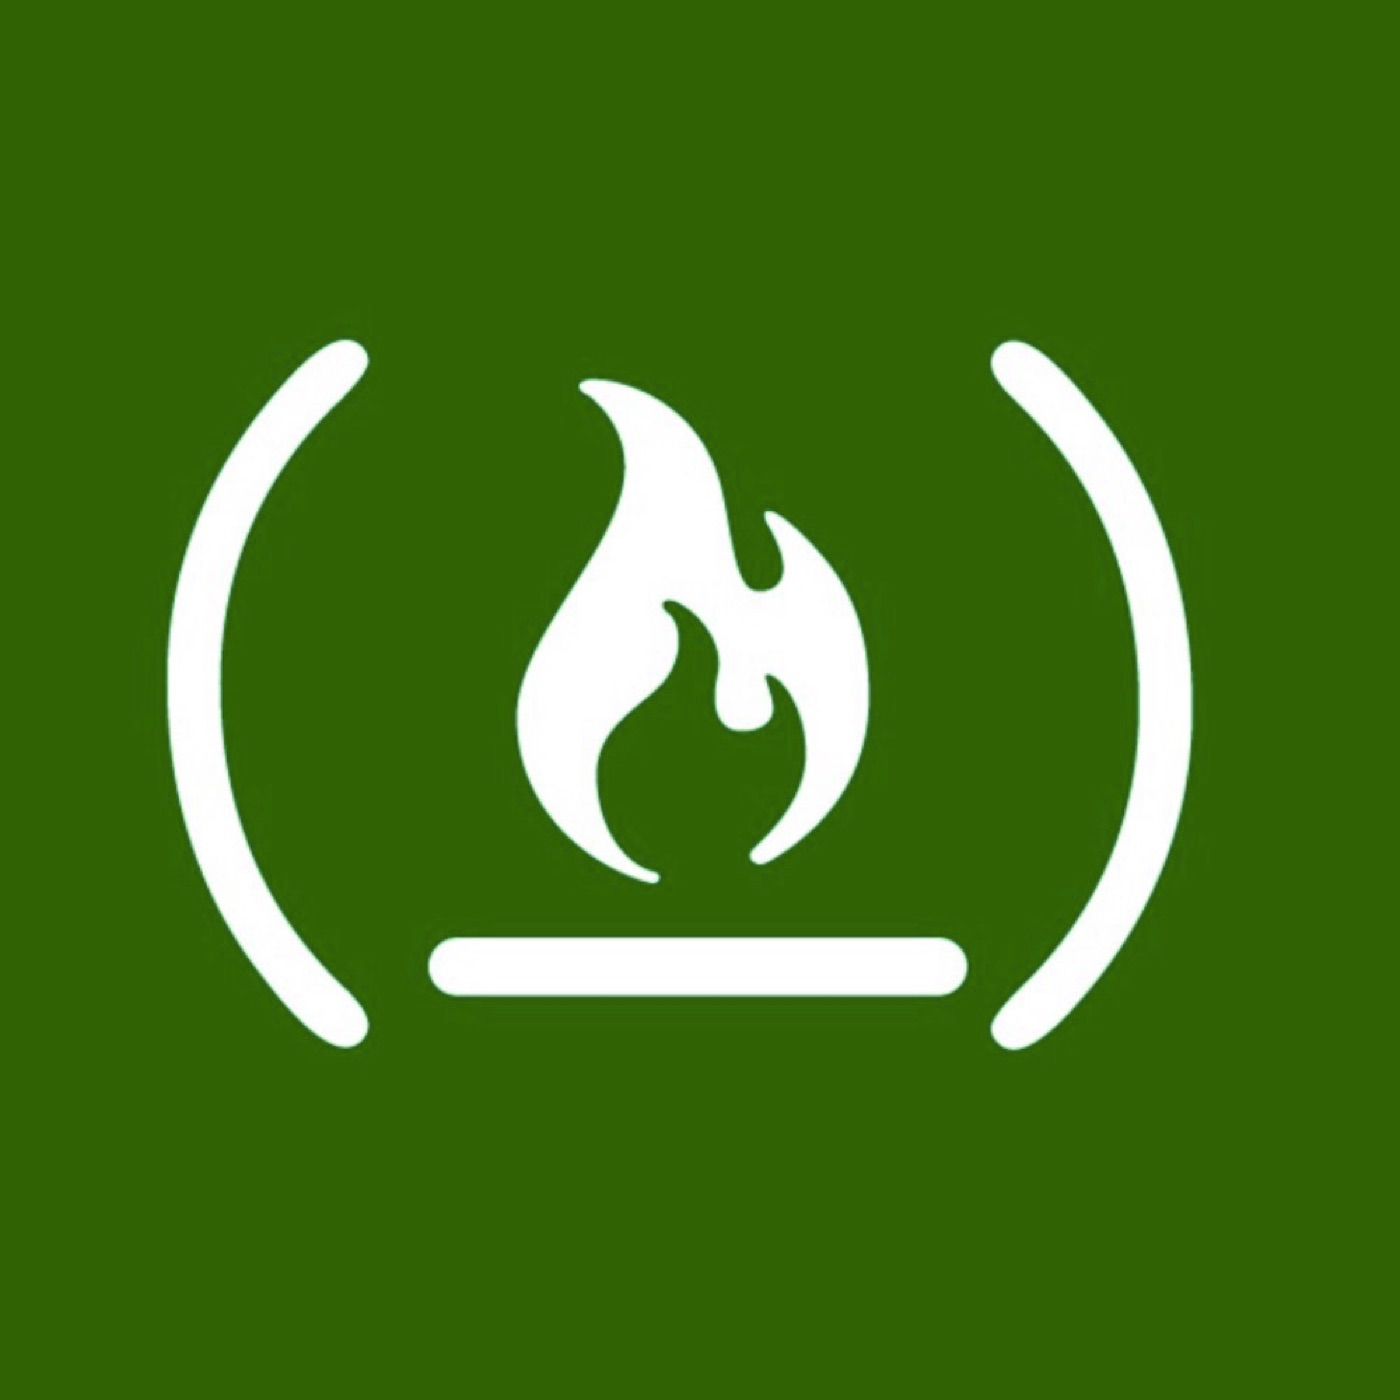 Freecodecamp Png - freeCodeCamp - Style Guide